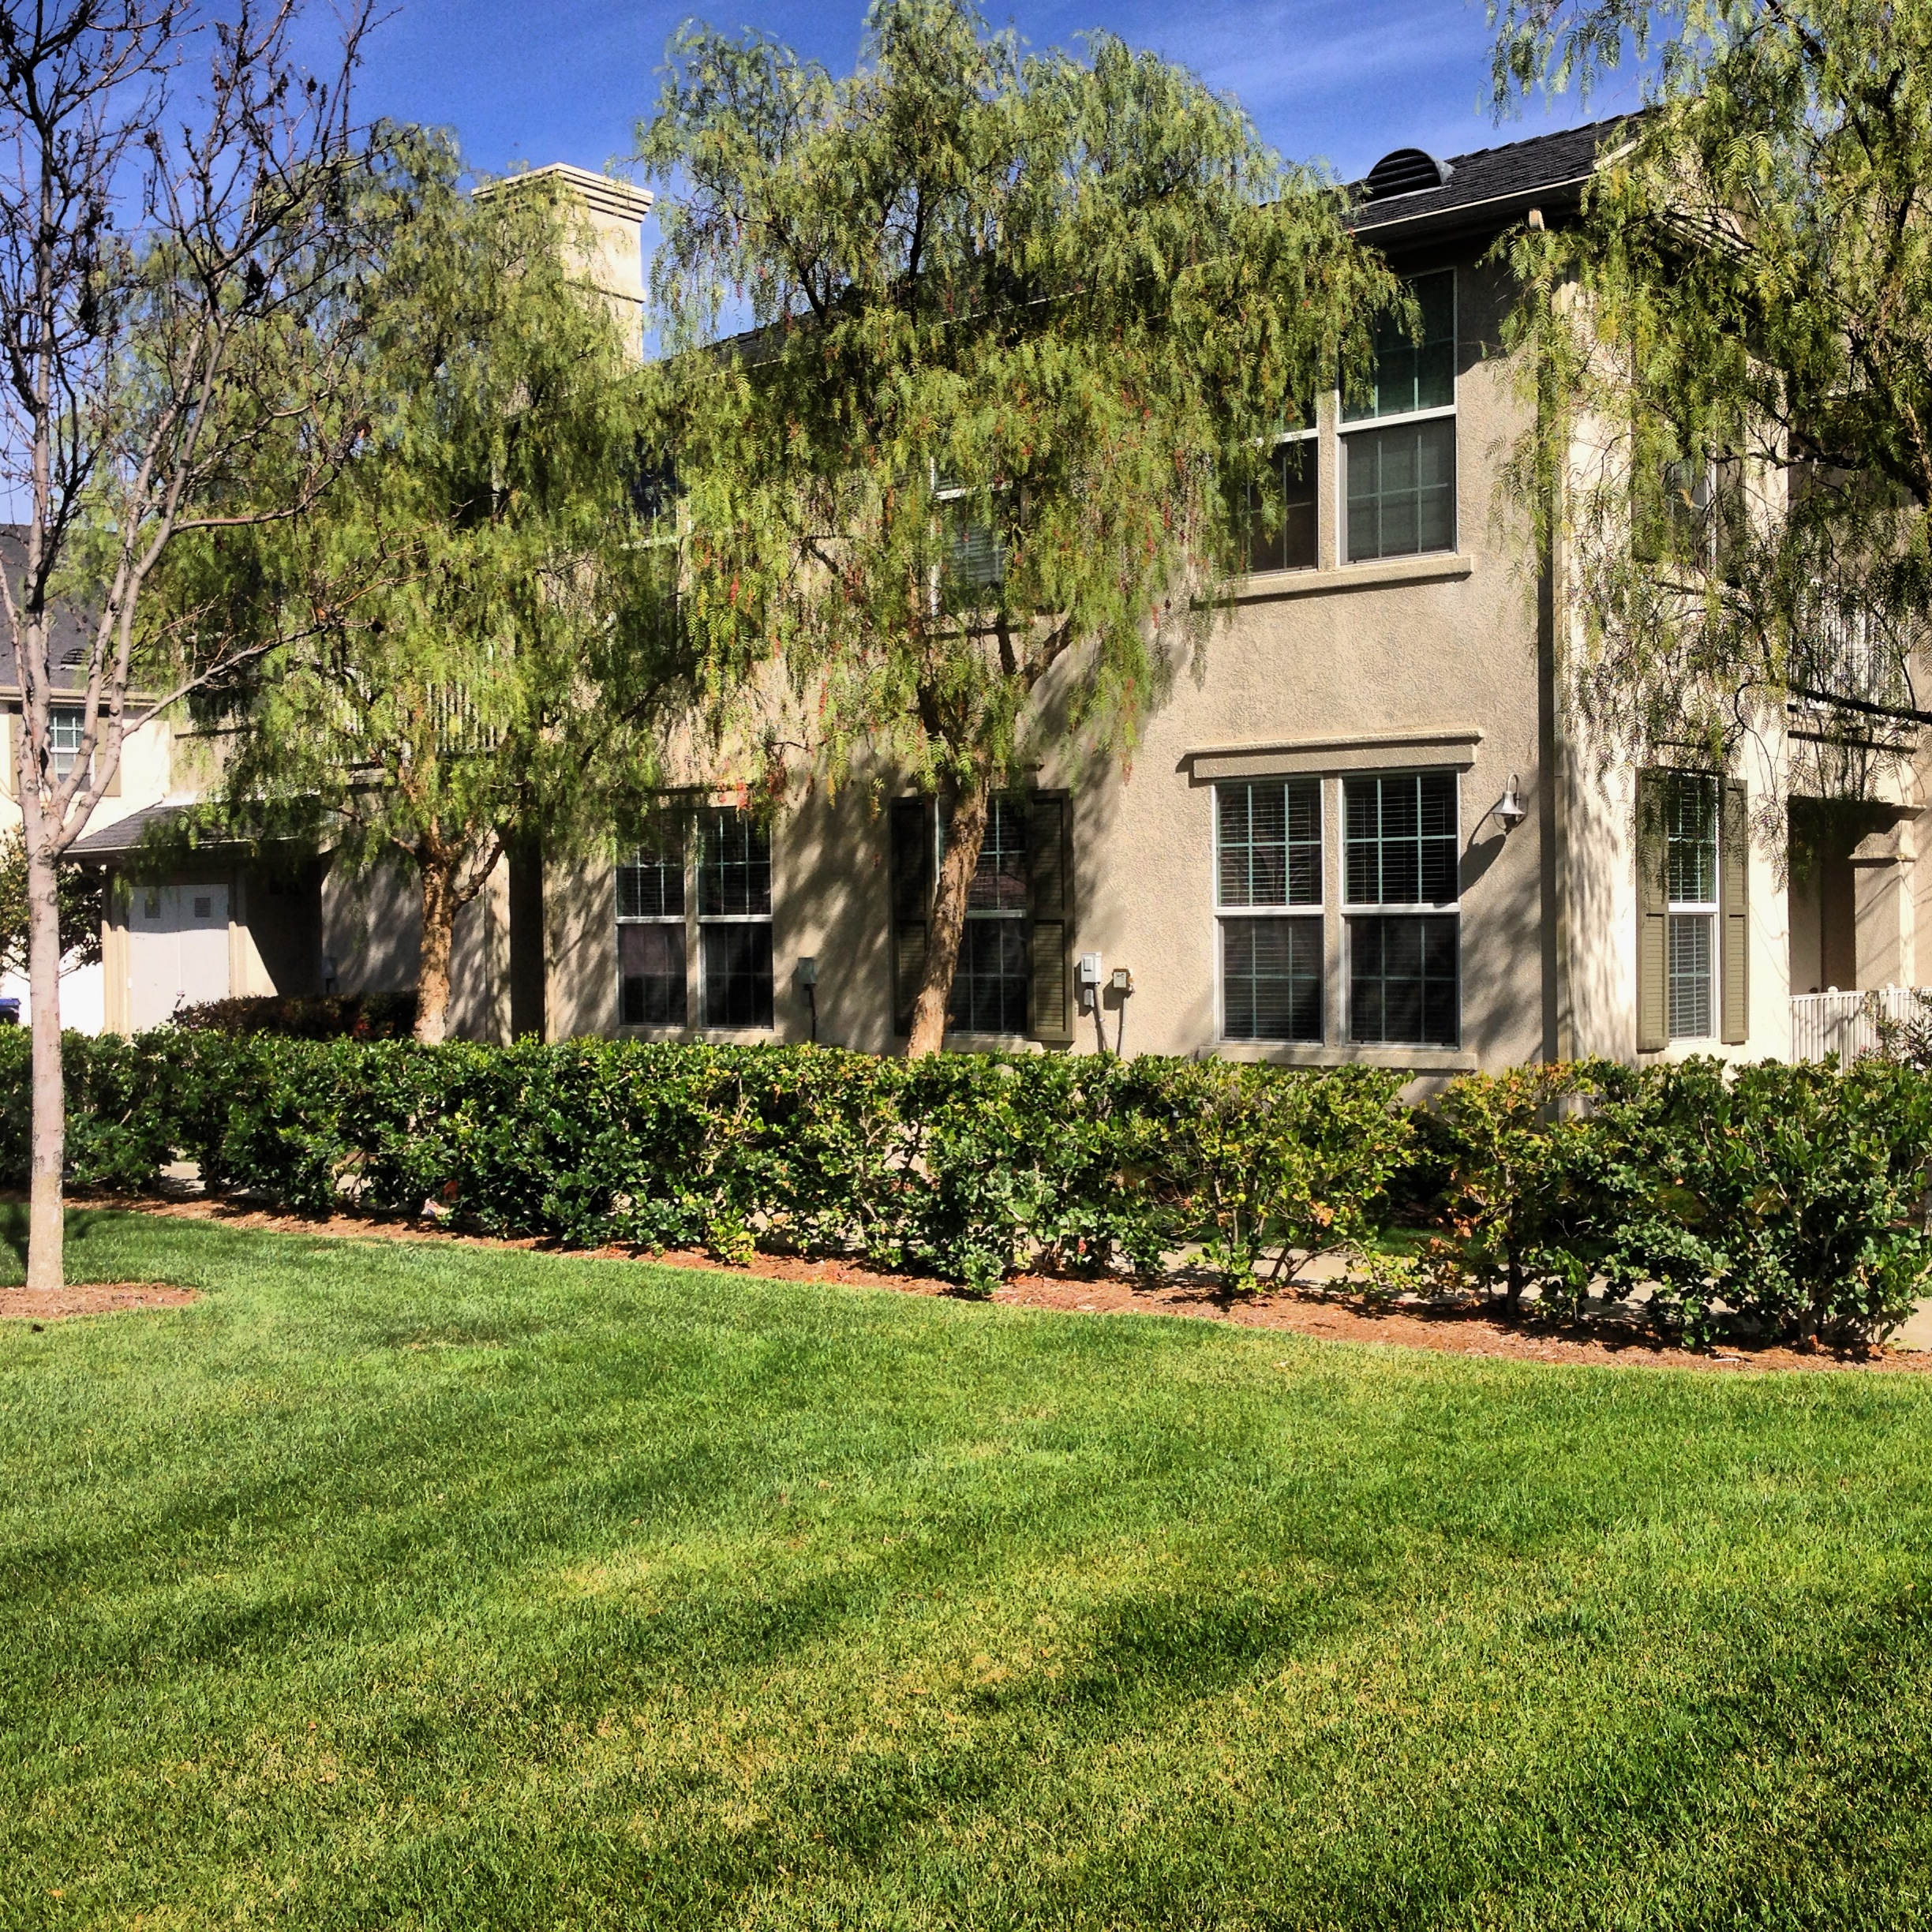 Amount Of Homes For Sale In Santa Clarita Is Rising